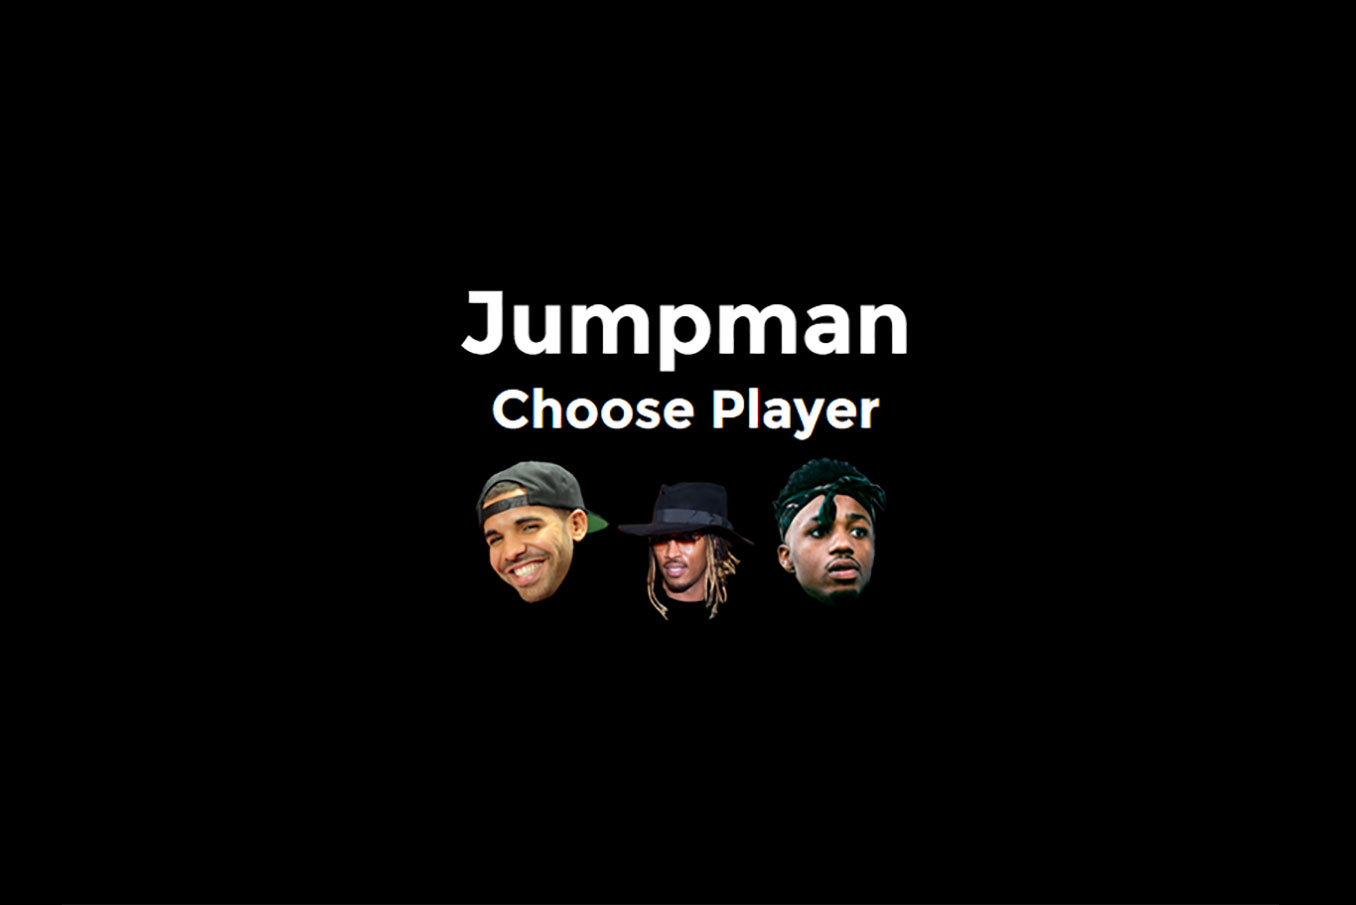 play this drake and future jumpman inspired game